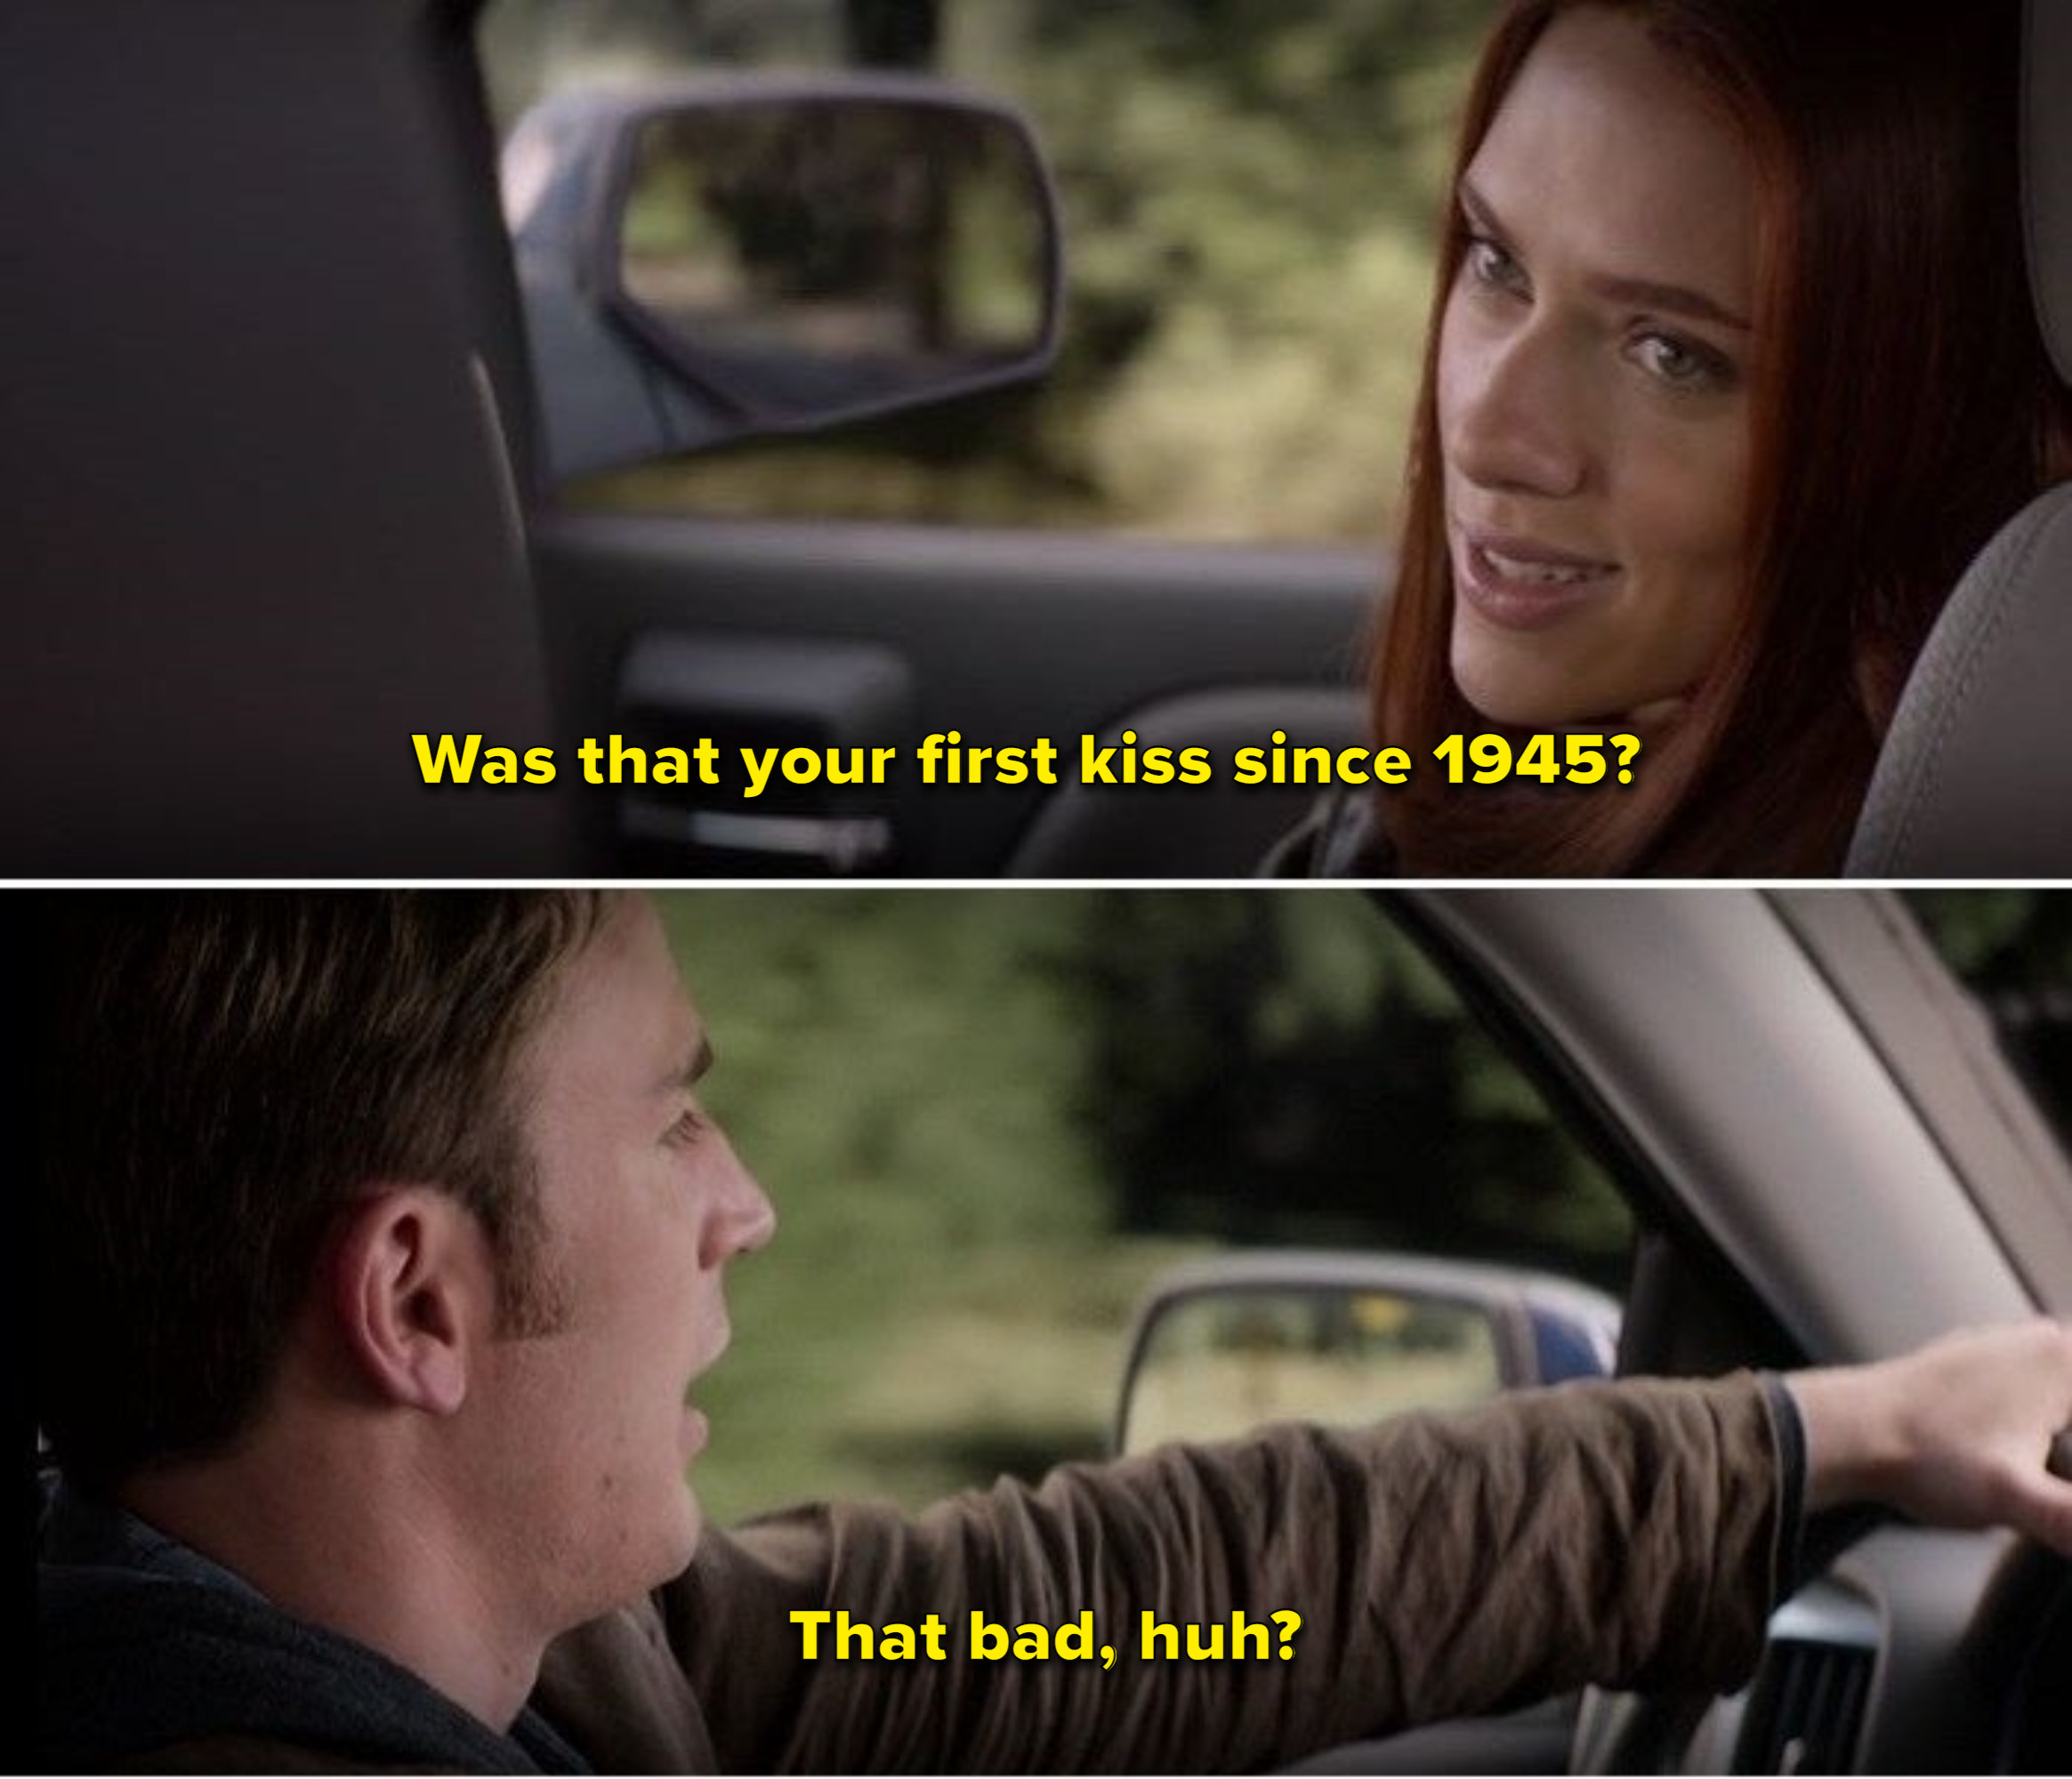 Natasha asks Steve if it was his first kiss since 1945